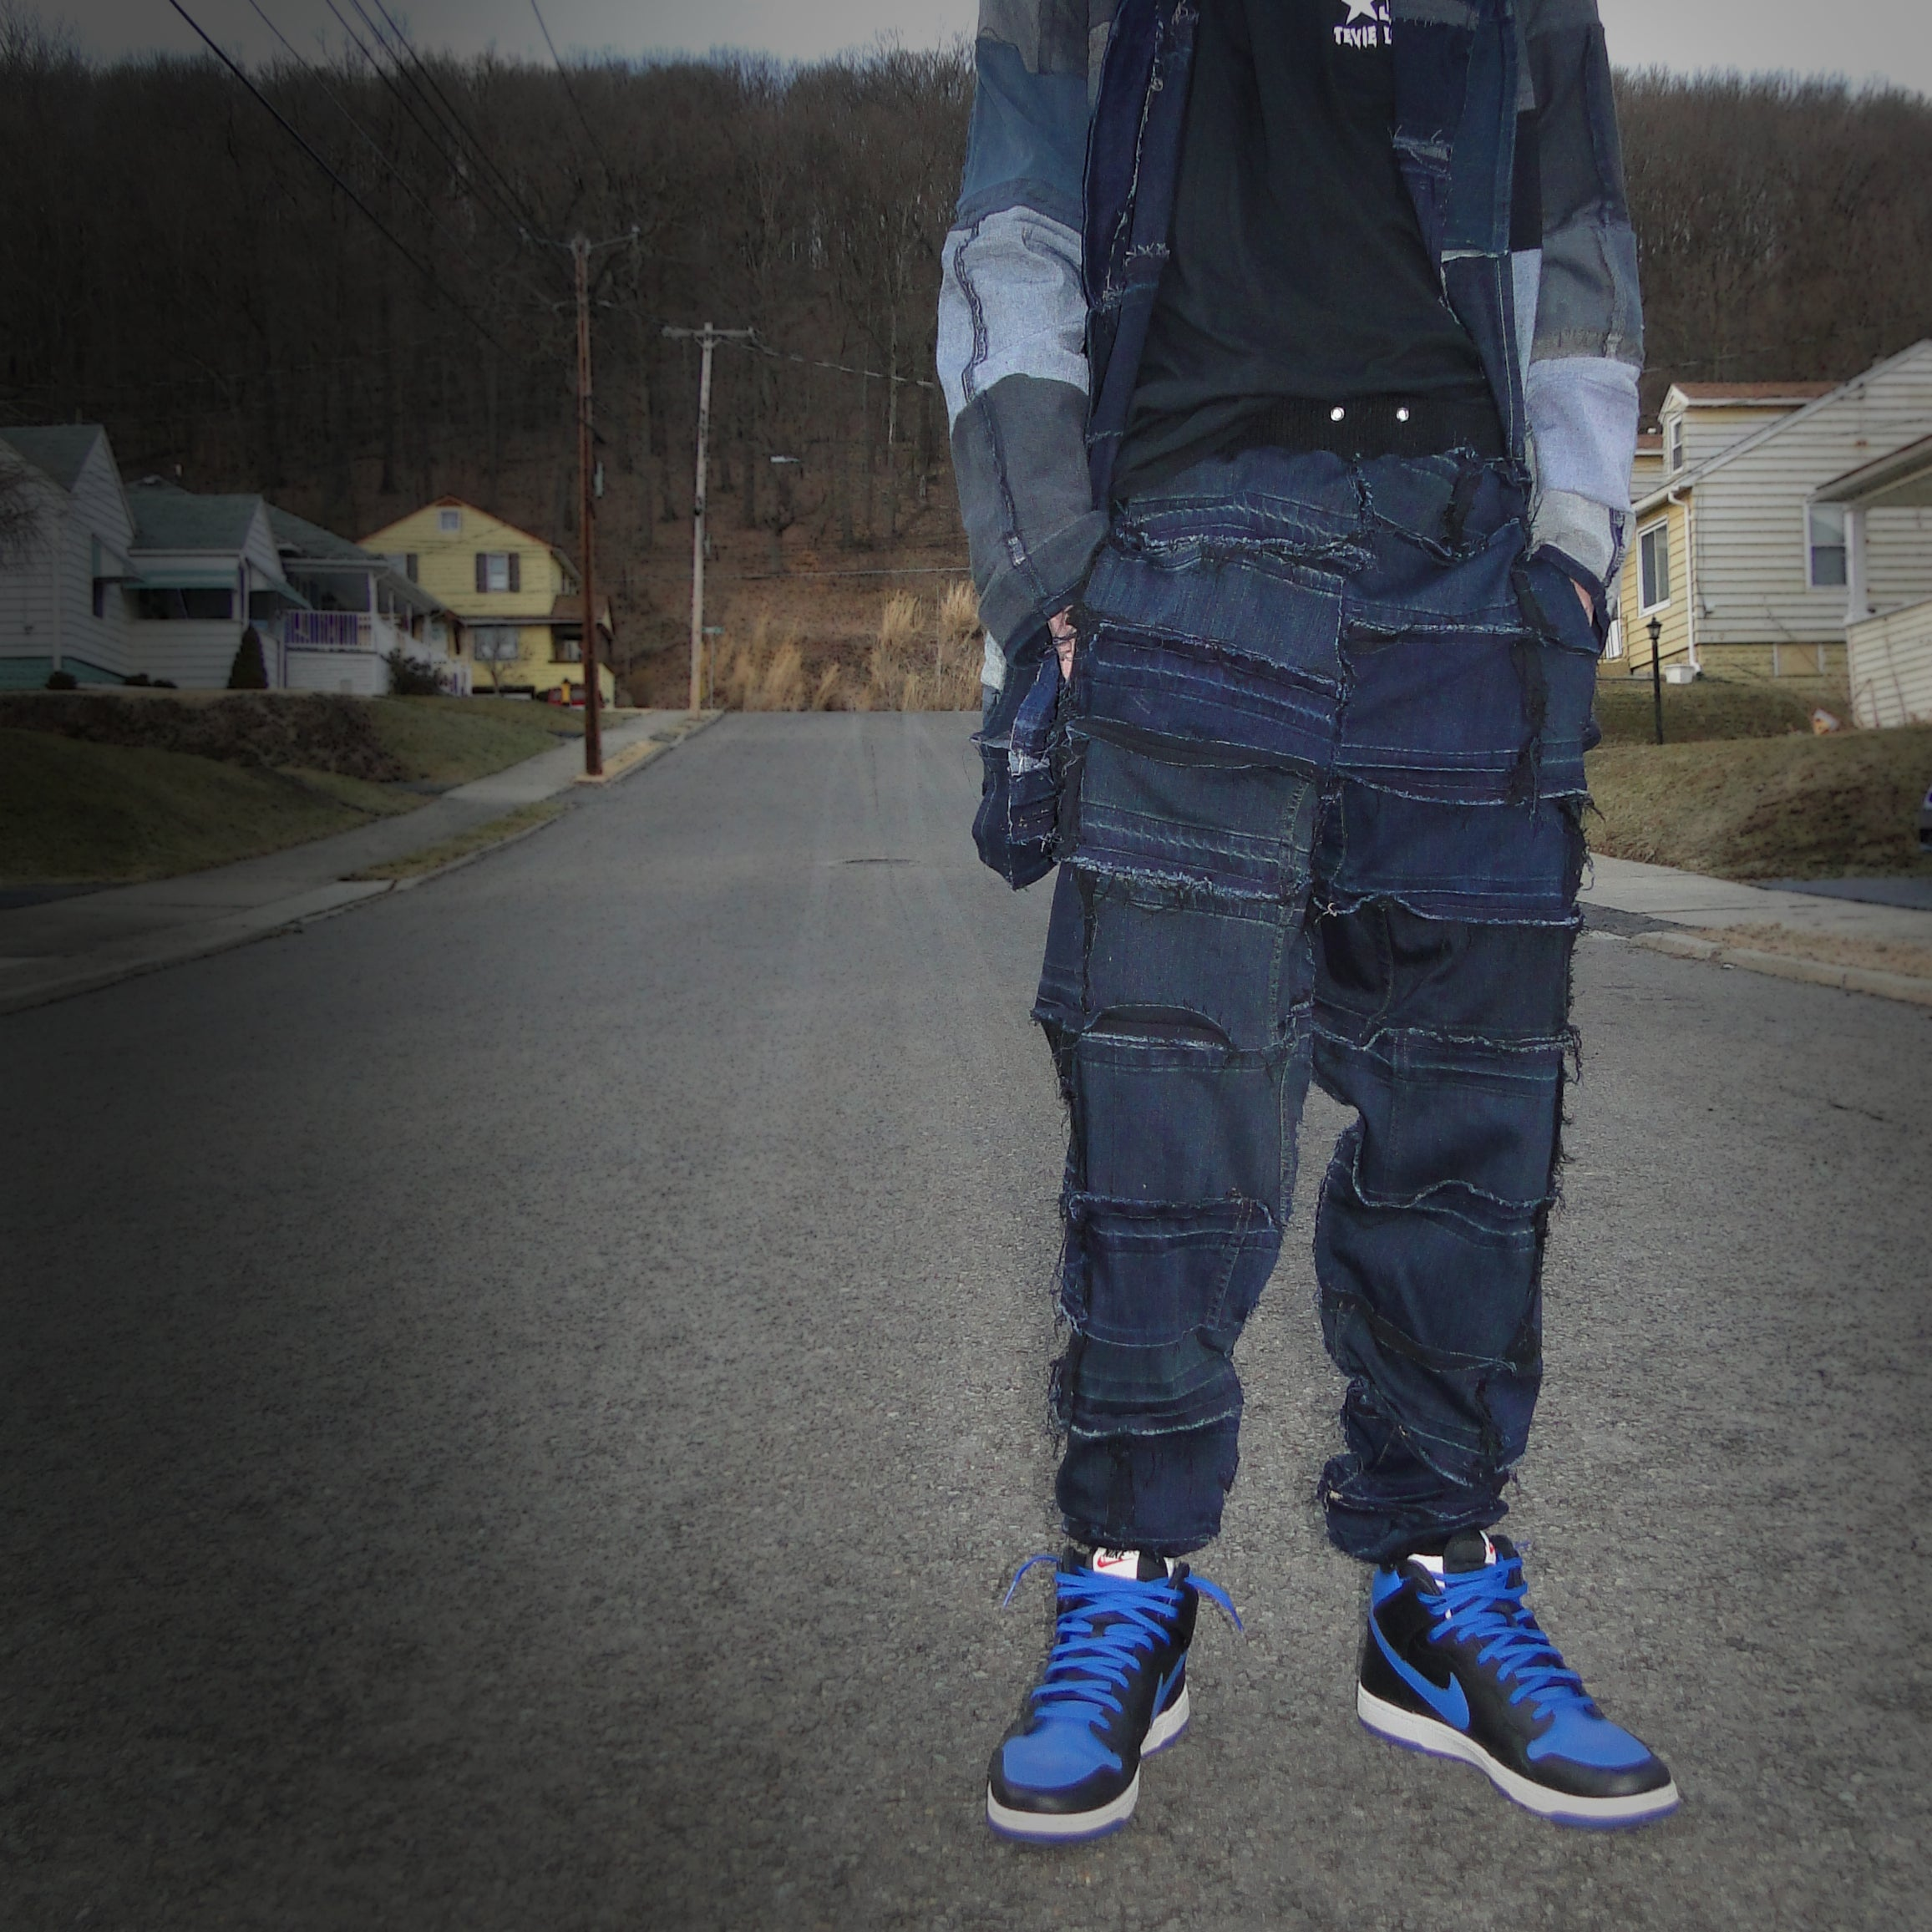 upcycled, reversible, sustainable denim joggers. Genderless style fashion.